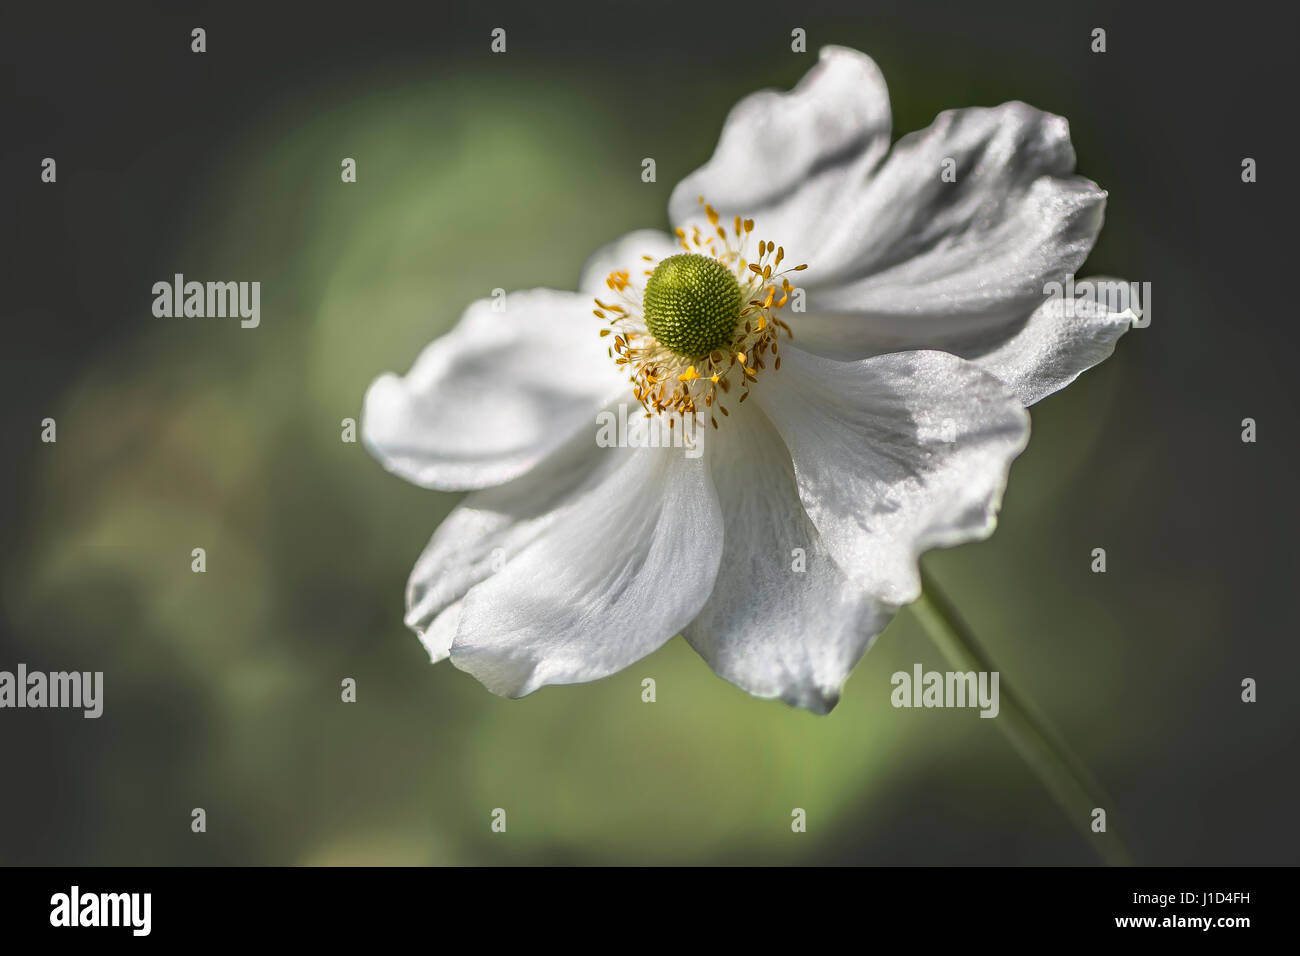 An isolated white Japanese Anemone with green and yellow blurred background. Also known as Chinese Anemone, Thimbleweed - Stock Image